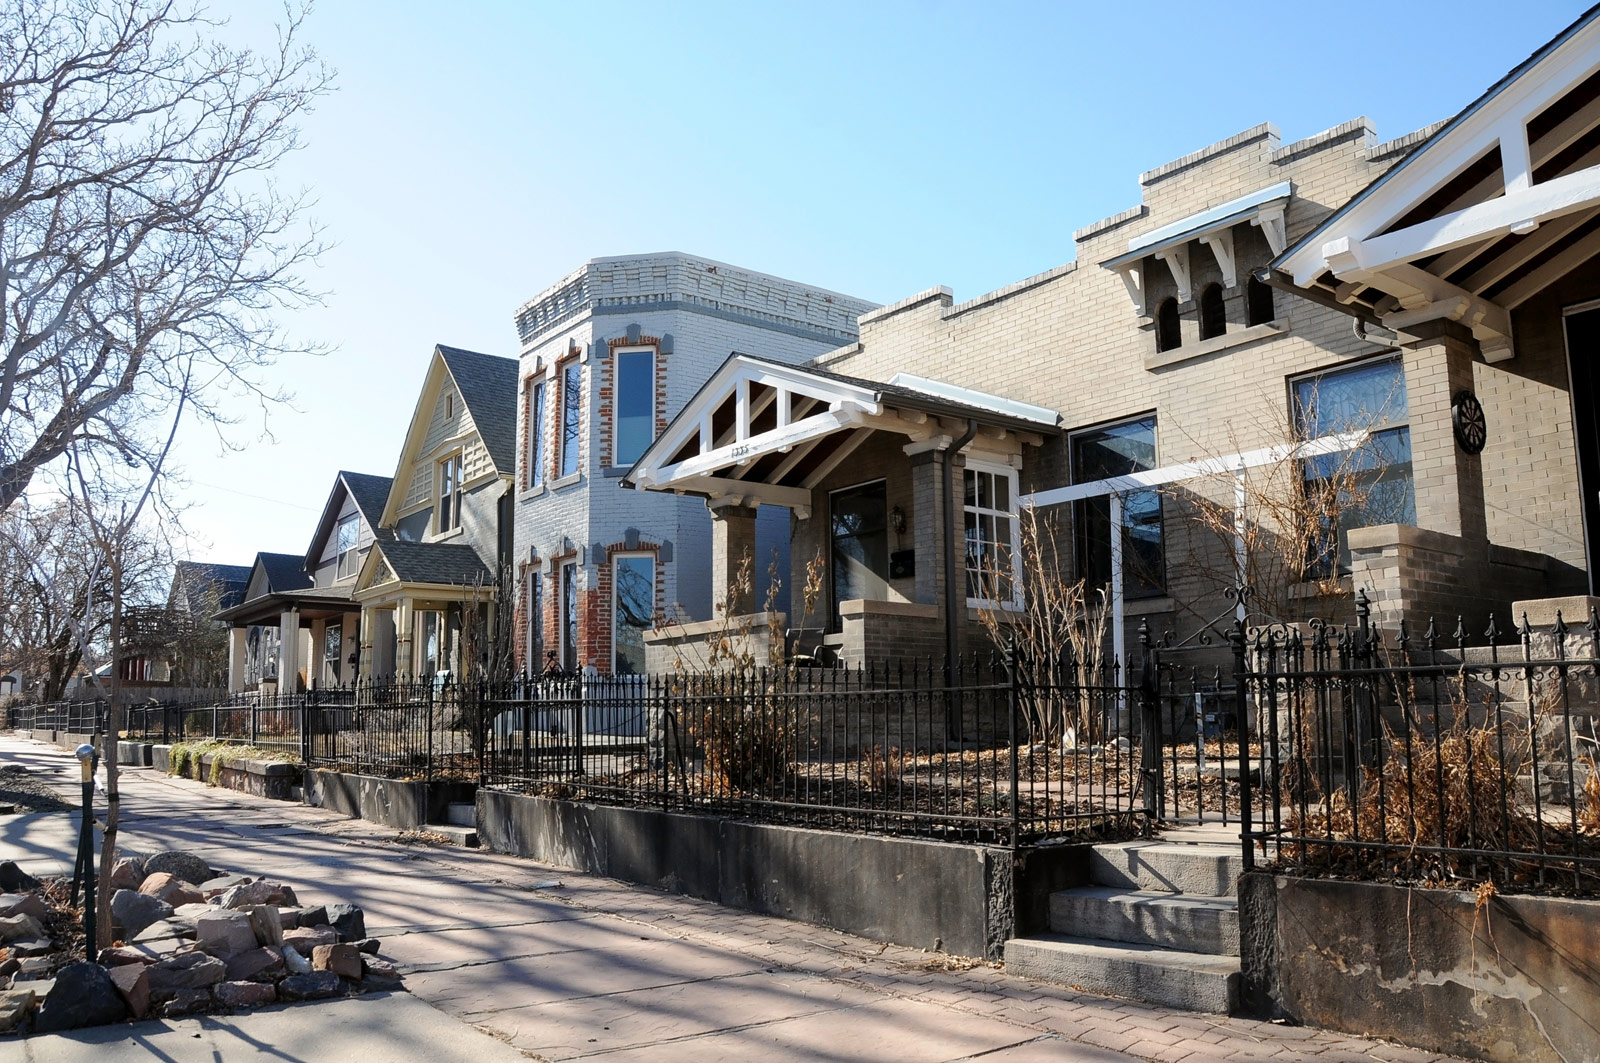 Neighborhood streetscape showing the variety of architectural styles along Lipan street in Denver.